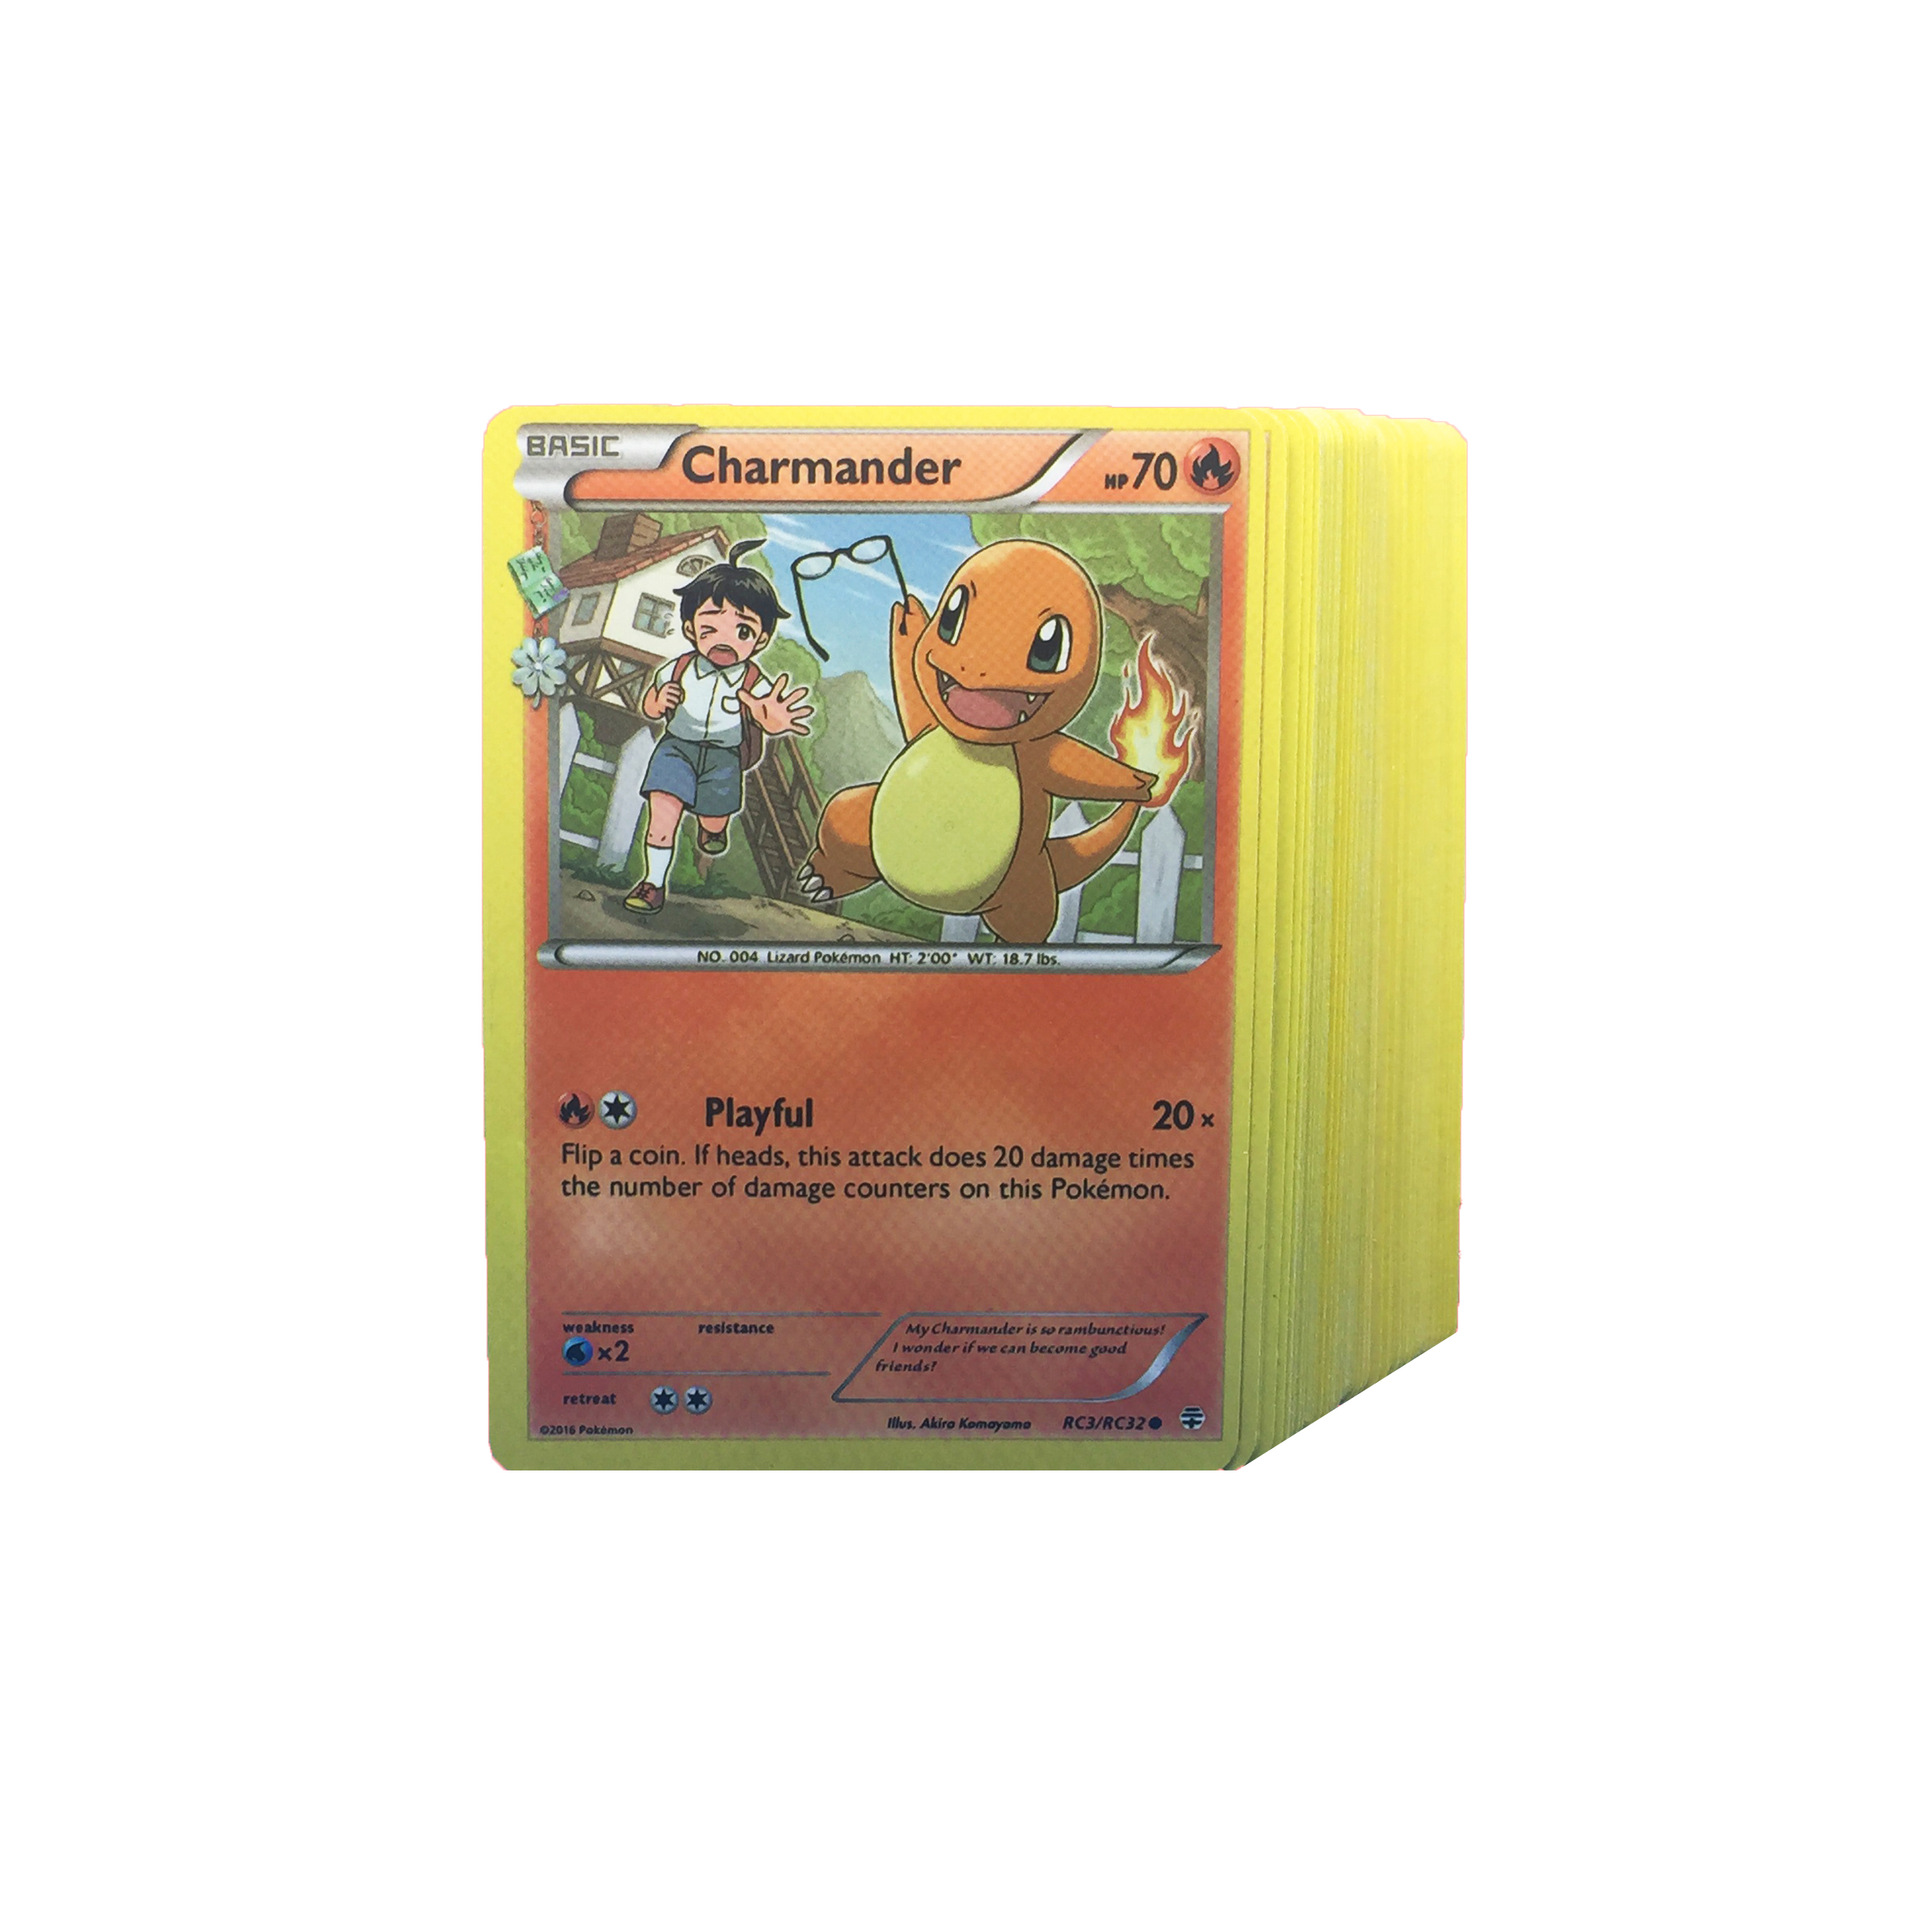 takara-tomy-100pcs-set-no-repeat-font-b-pokemon-b-font-battle-toys-hobbies-hobby-collectibles-game-collection-anime-cards-for-children